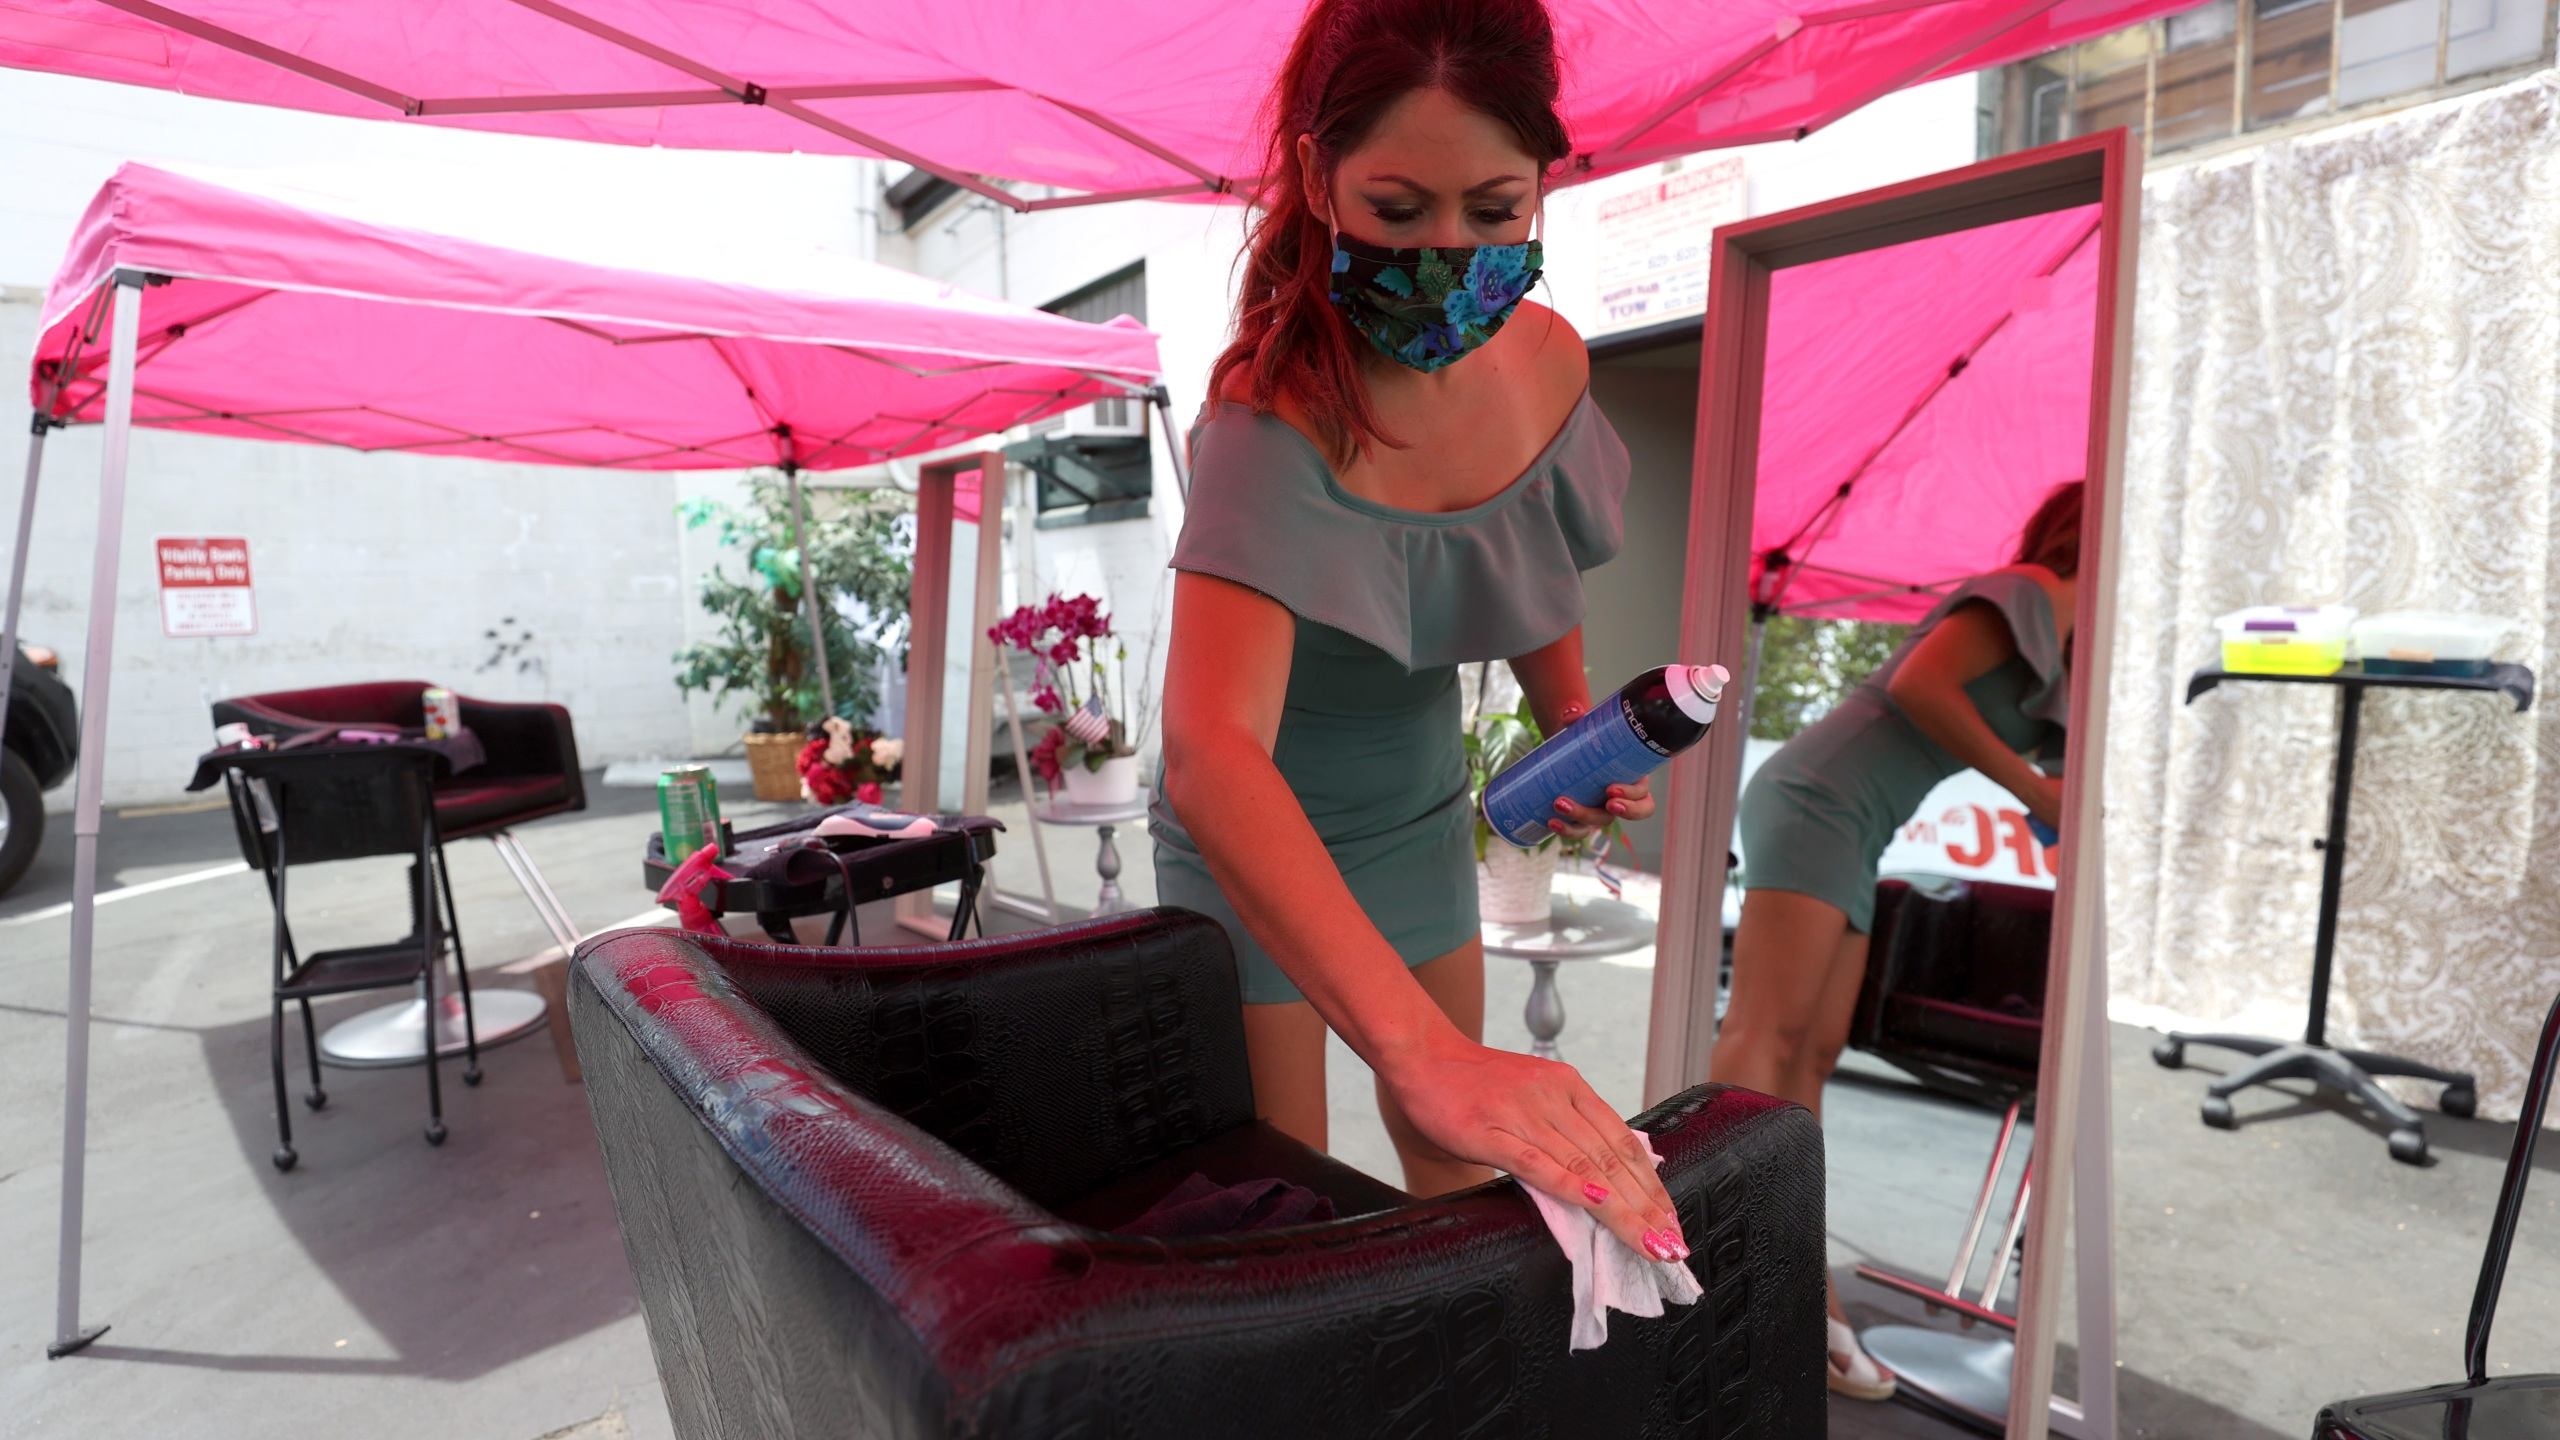 Contra Costa County Allows Gyms Nail Salons And Massage Services To Reopen Outdoors Ktla